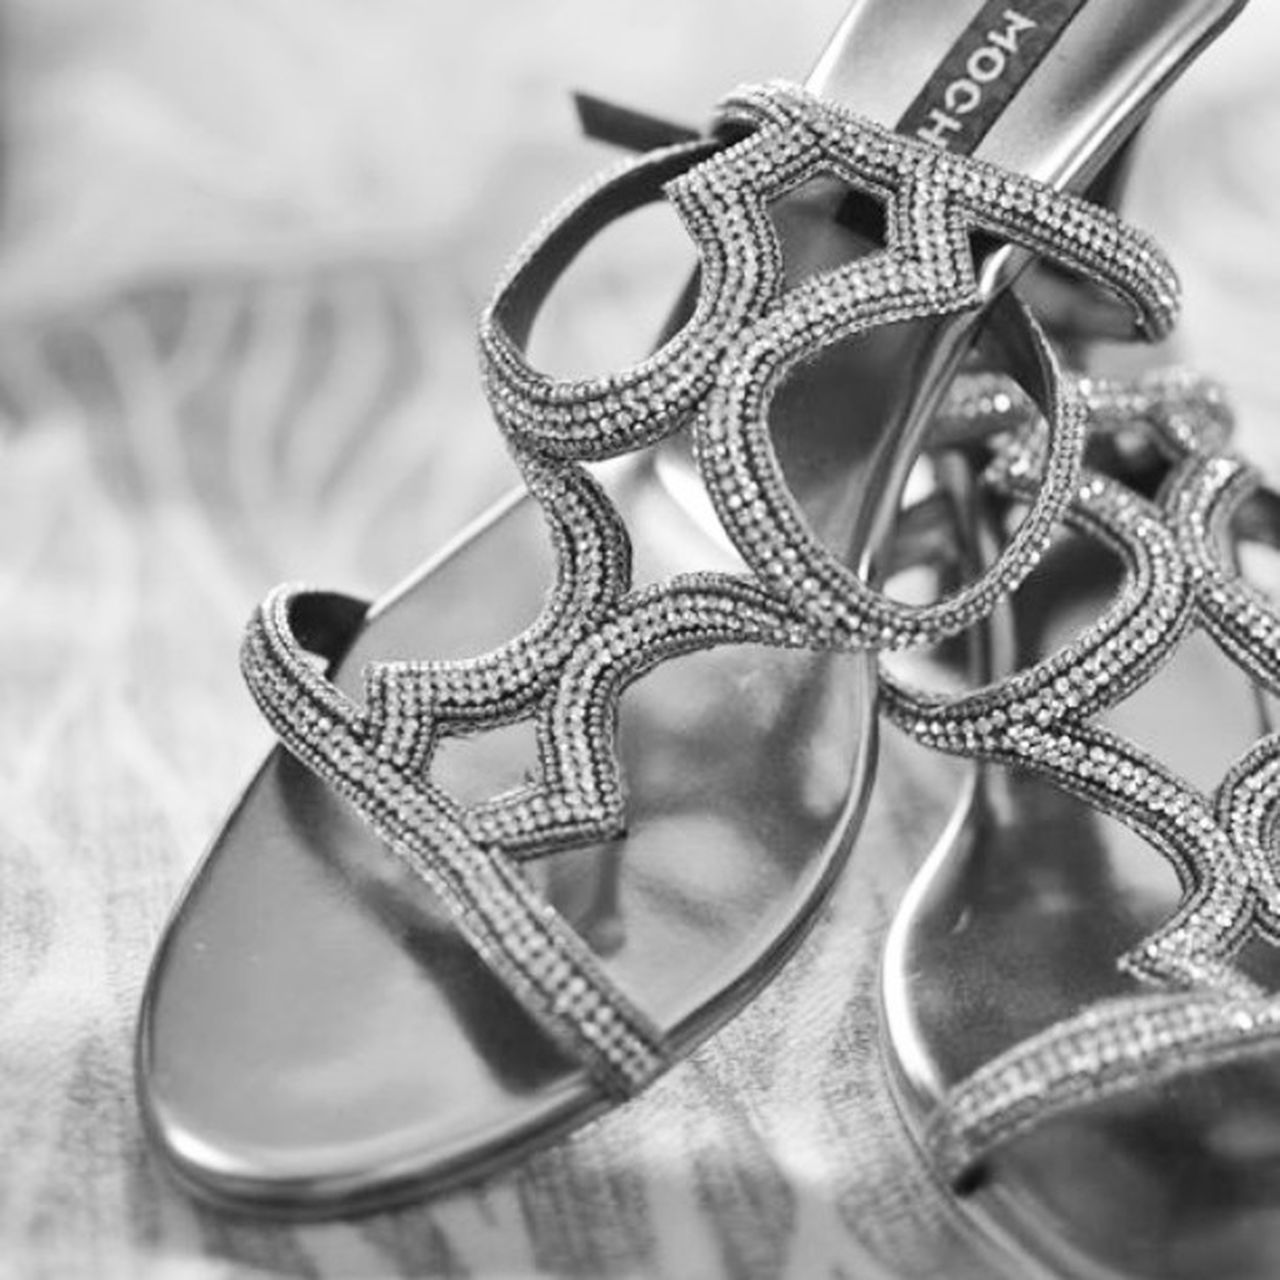 fashion, elegance, luxury, jewelry, ornate, necklace, indoors, shoe, close-up, beauty, glamour, shiny, wedding, no people, formalwear, day